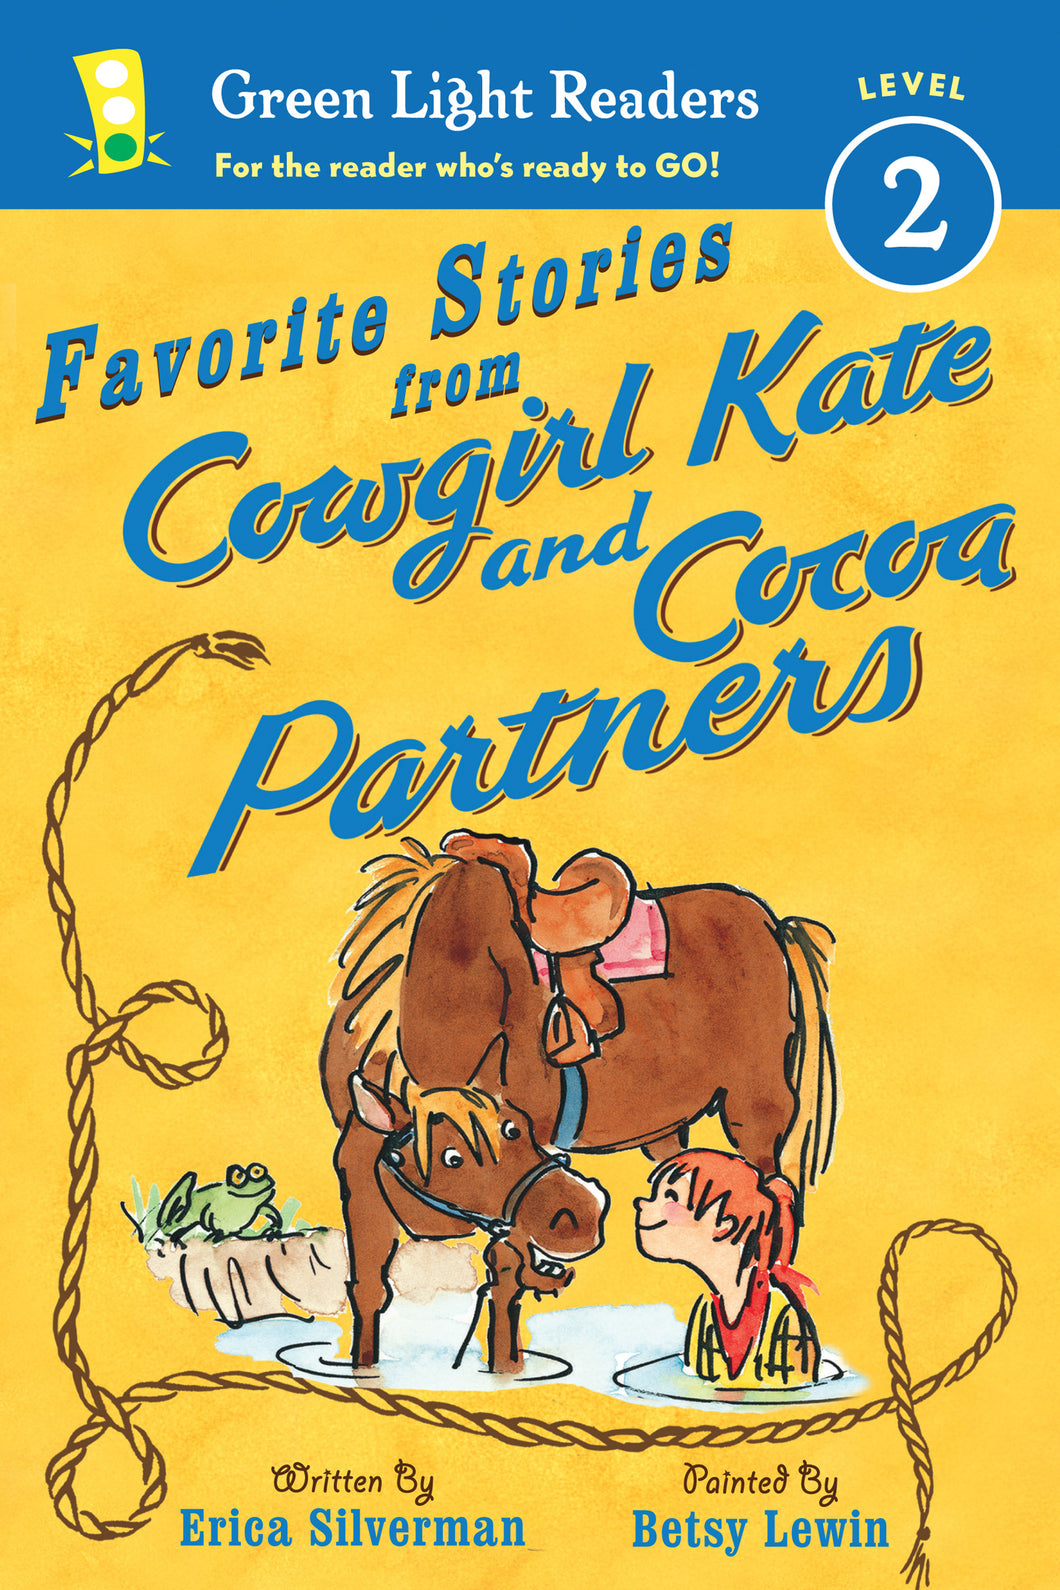 Favorite Stories from Cowgirl Kate and Cocoa: Partners